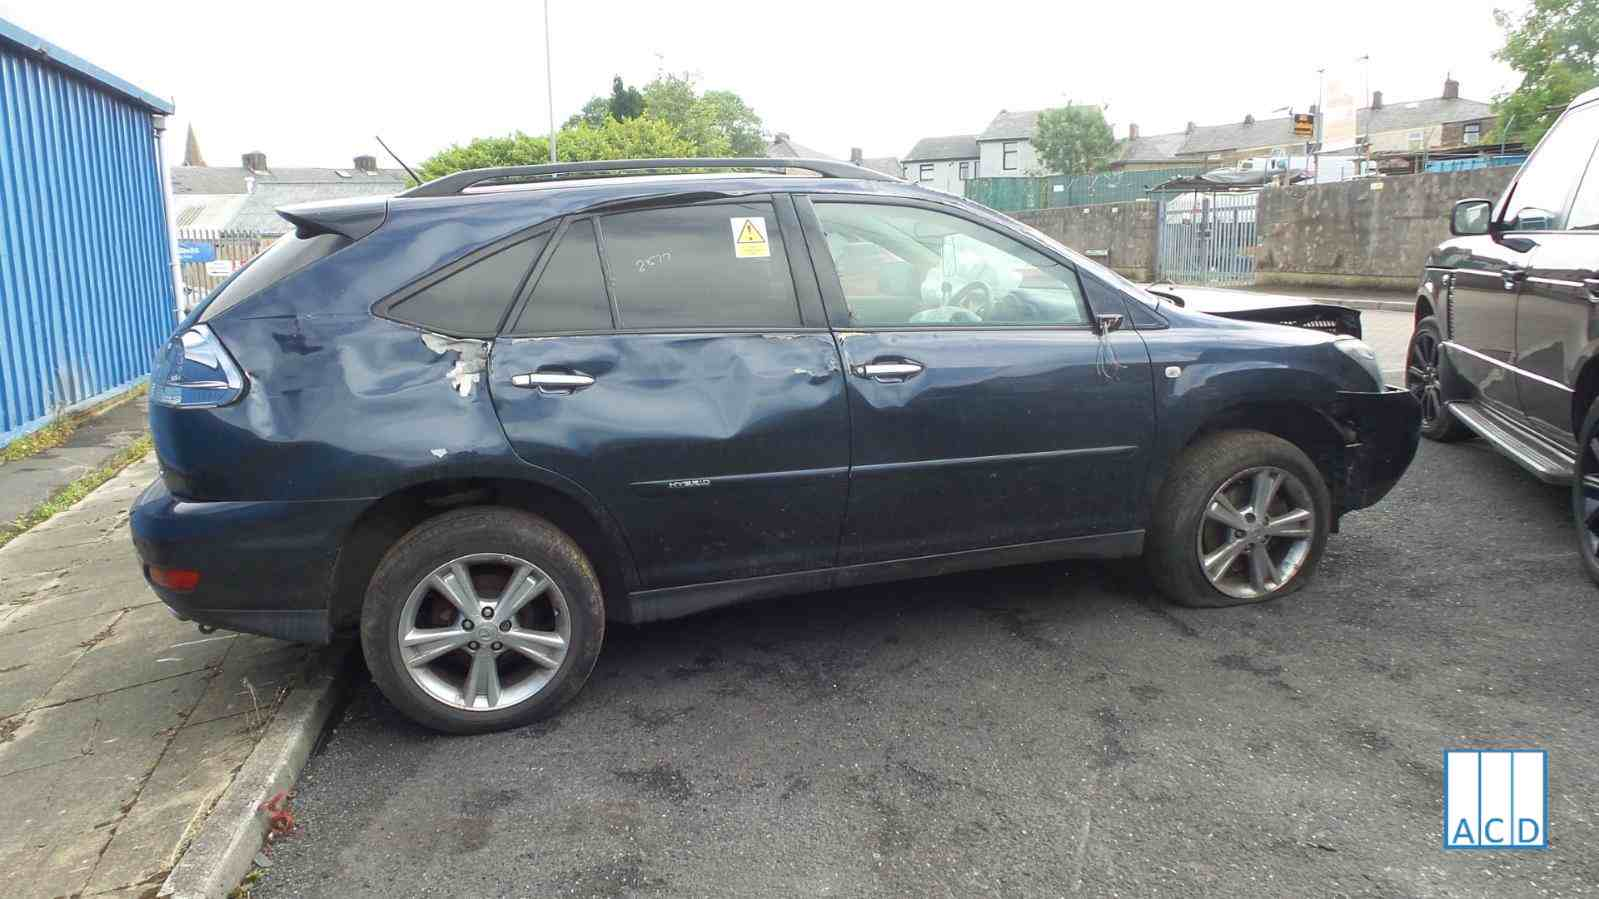 LEXUS RX400 H SE used parts